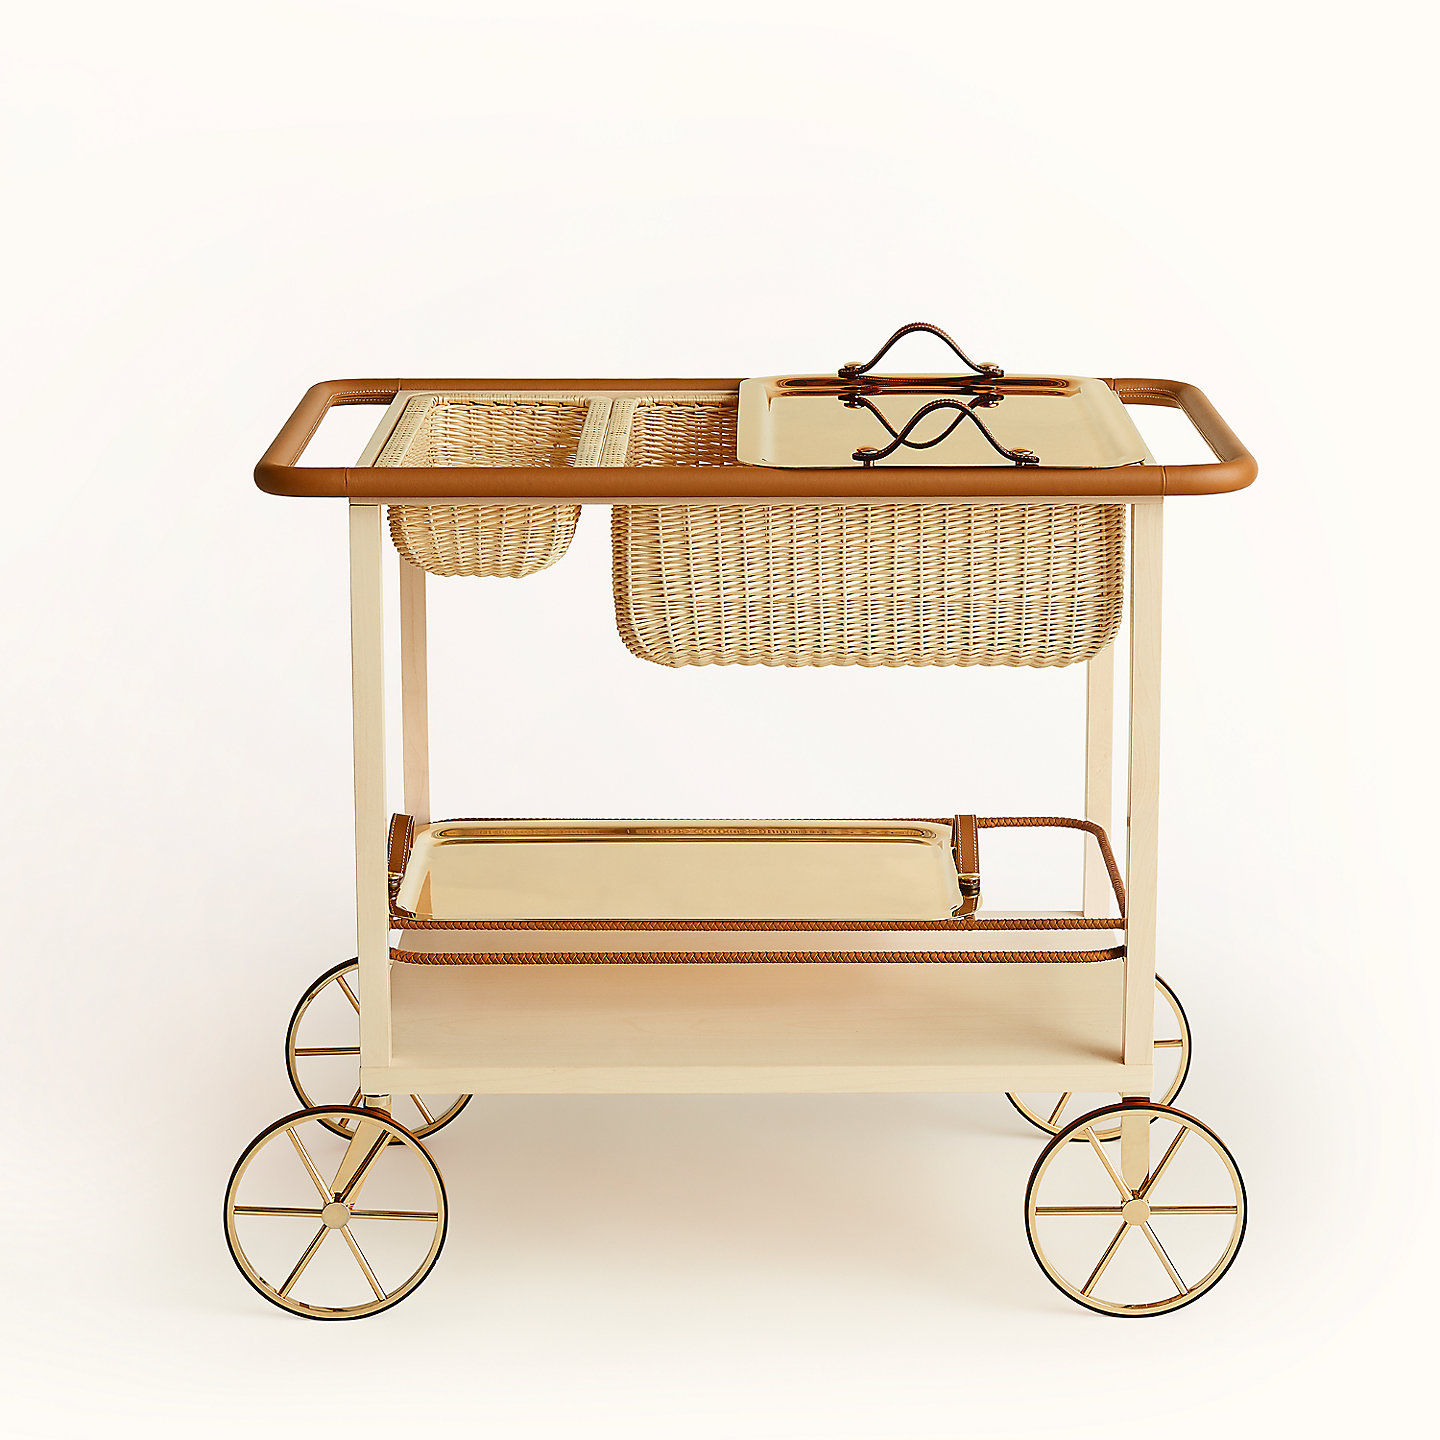 7. Equipages d'Hermes 'Diligence' Side Table ($40,900)